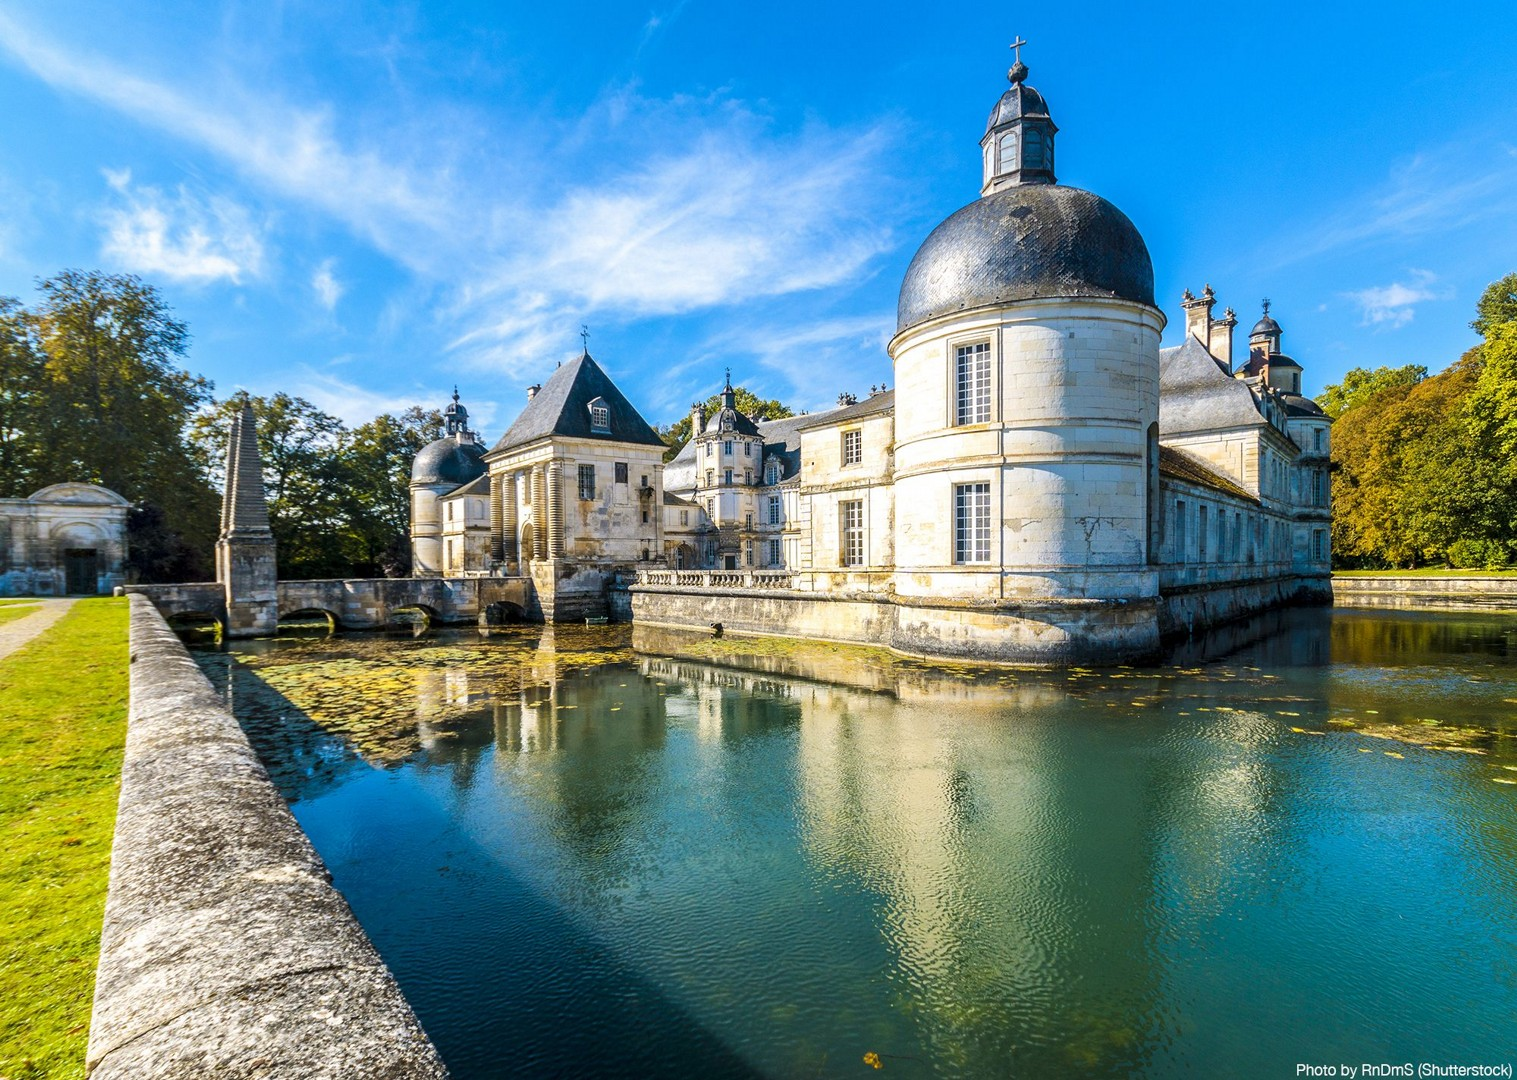 château-de-tanlay-burgundy-france-saddle-skedaddle-cycling-tour.jpg - France - Burgundy - Caves and Canals - Self-Guided Leisure Cycling Holiday - Leisure Cycling